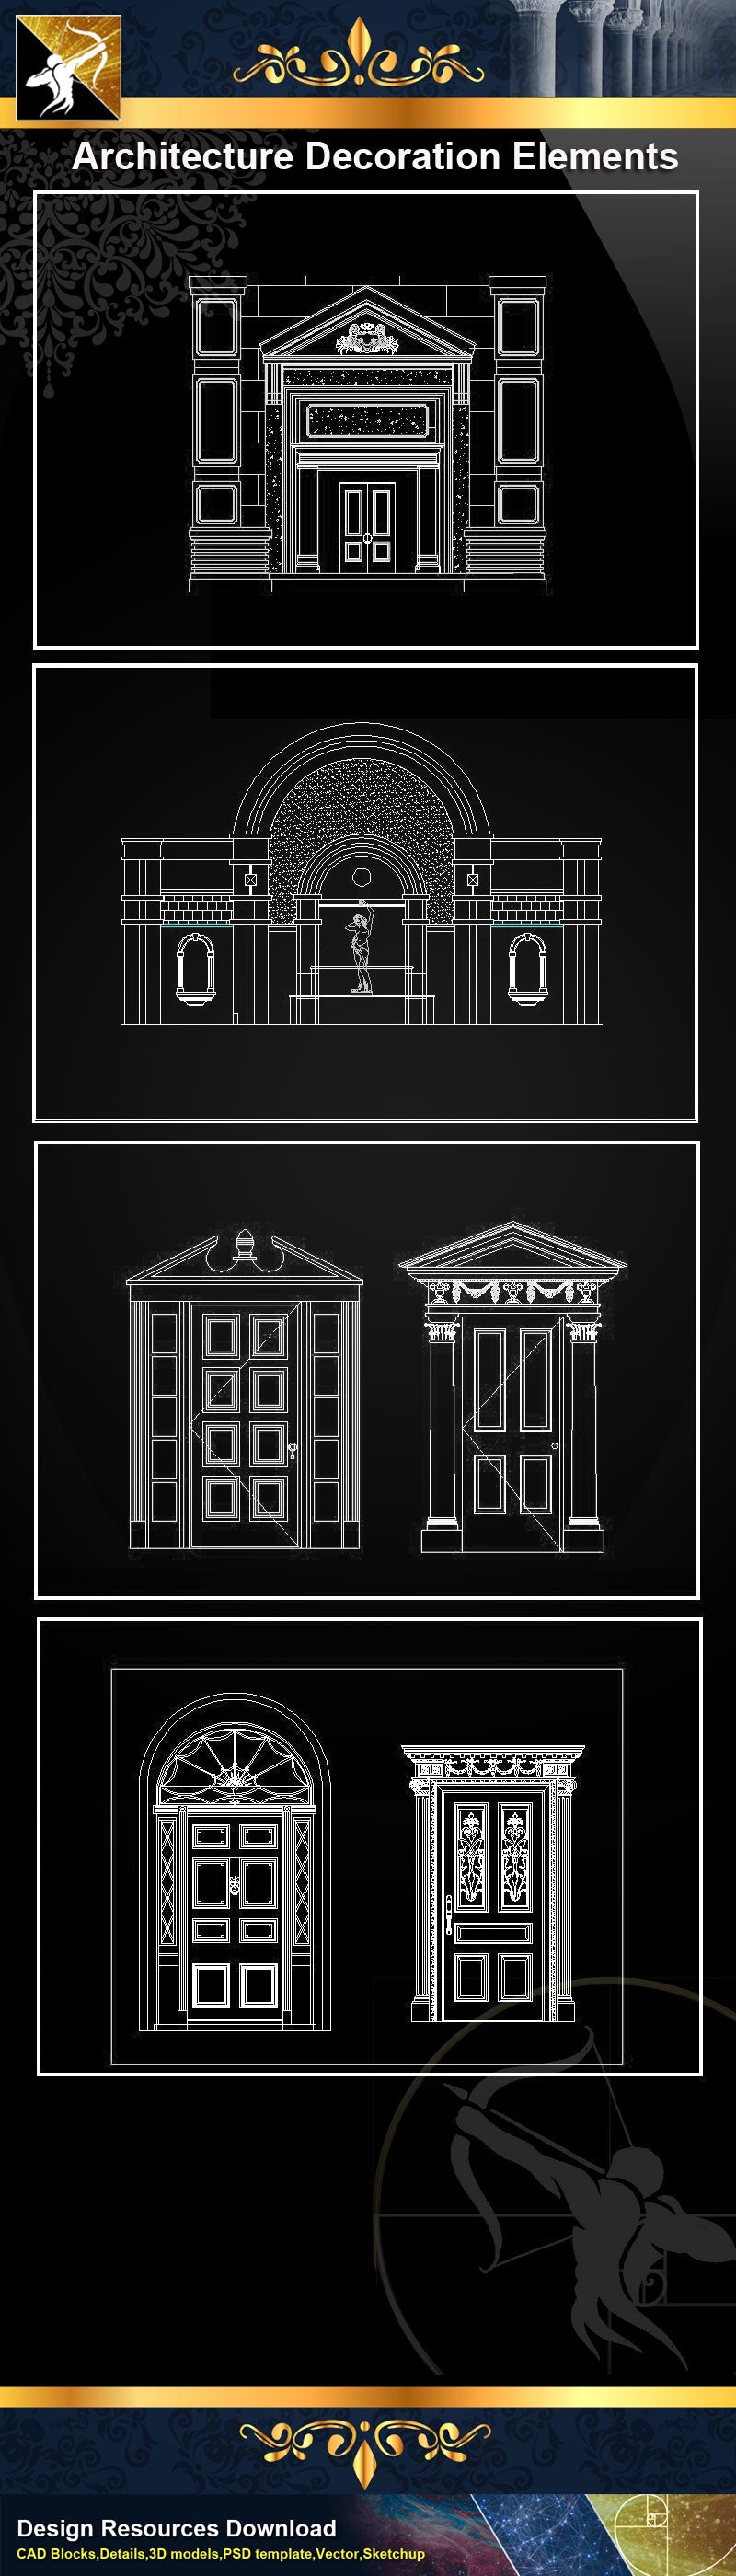 ★Architectural Decorative CAD Elements 04